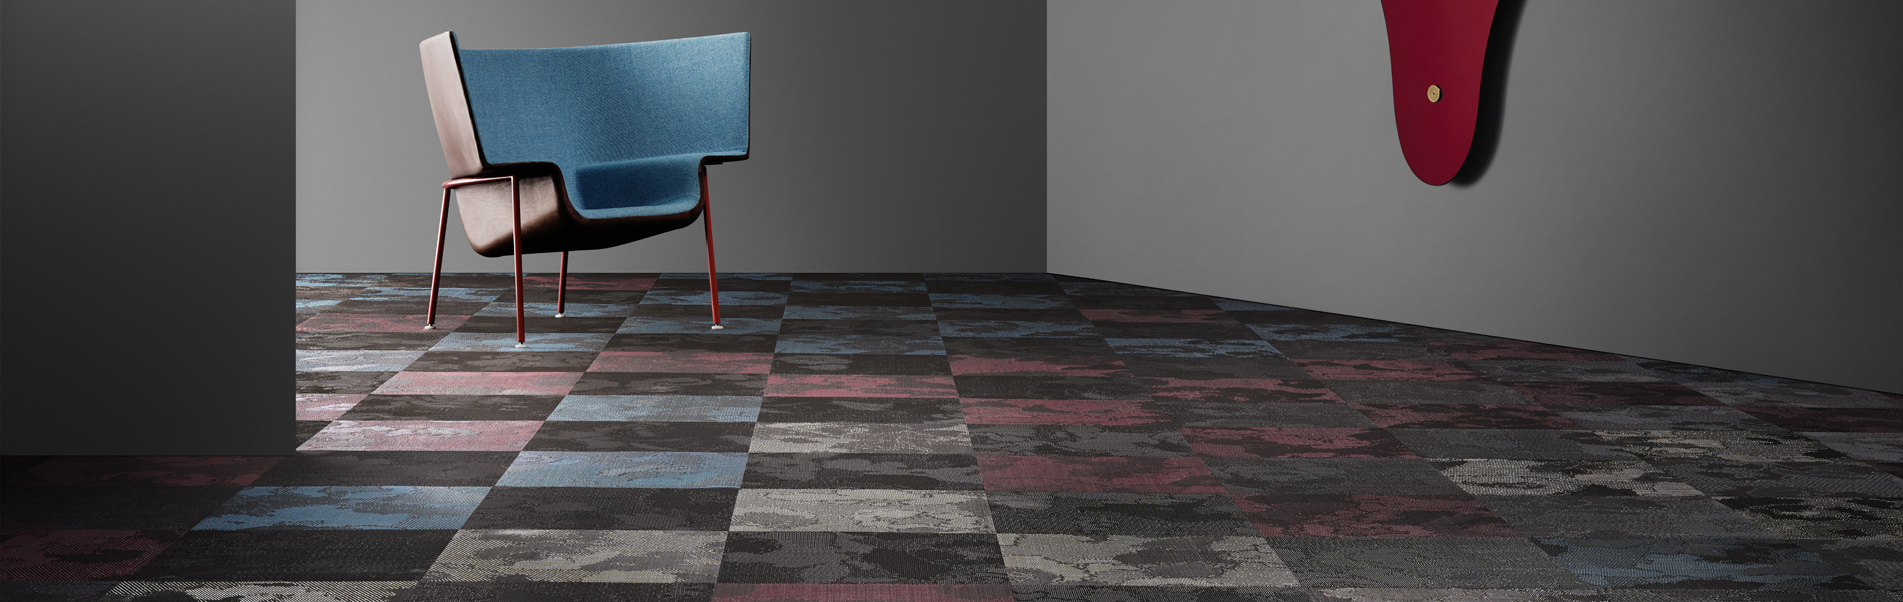 BOLON By You Tile Poppy - Gallery